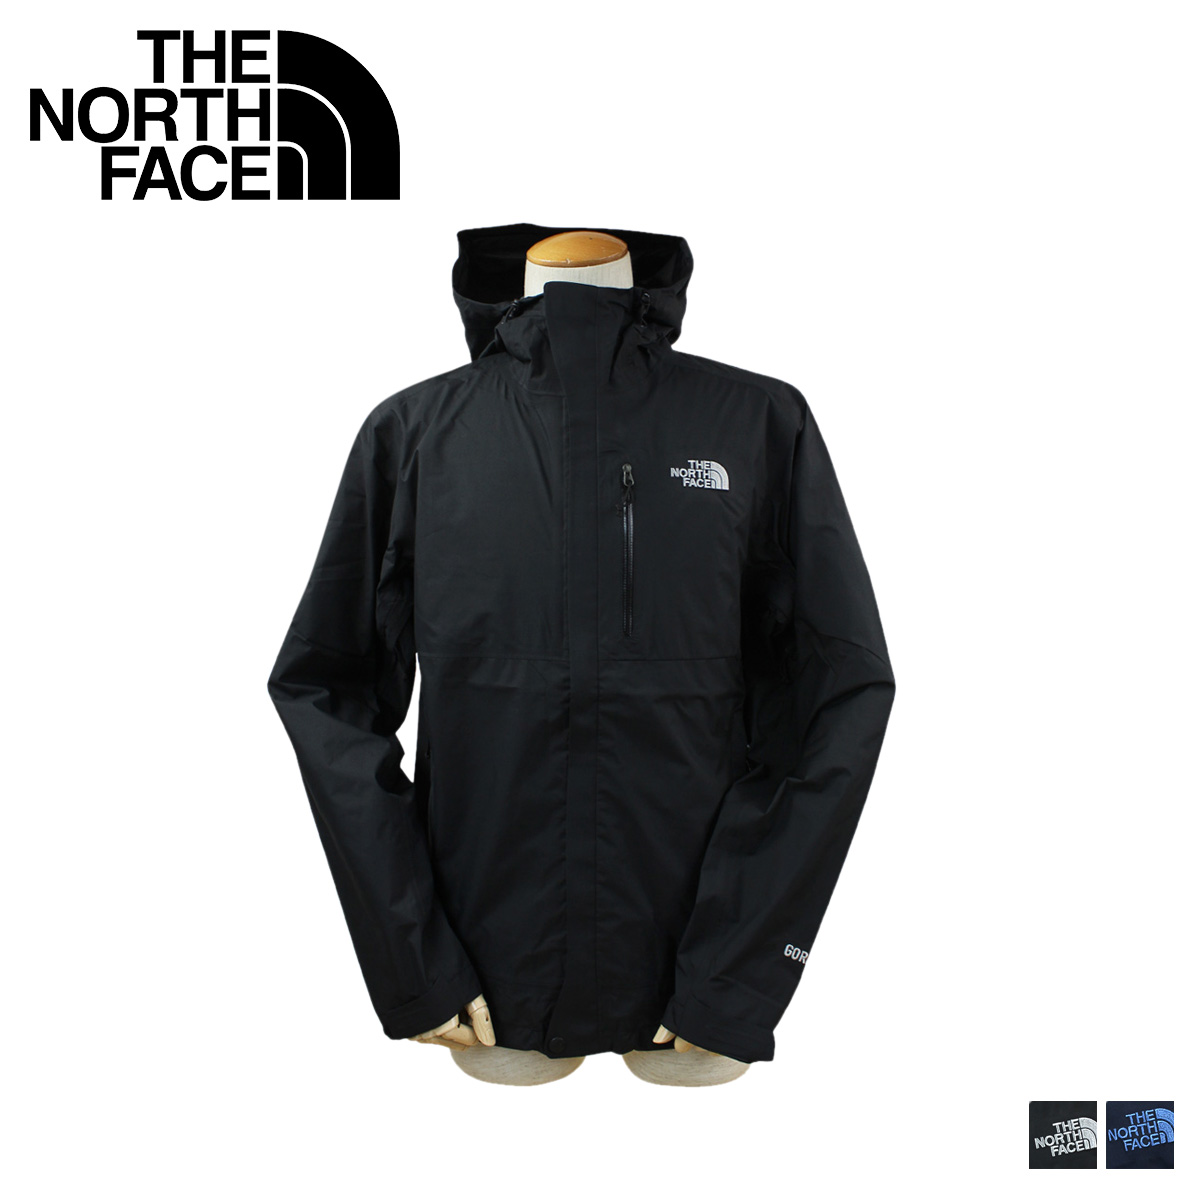 88f3fbc05e91  SOLD OUT  THE NORTH FACE the north face Shell Jacket MEN S DRYZZLE JACKET  A4E1 jacket  8 2 Add in stock